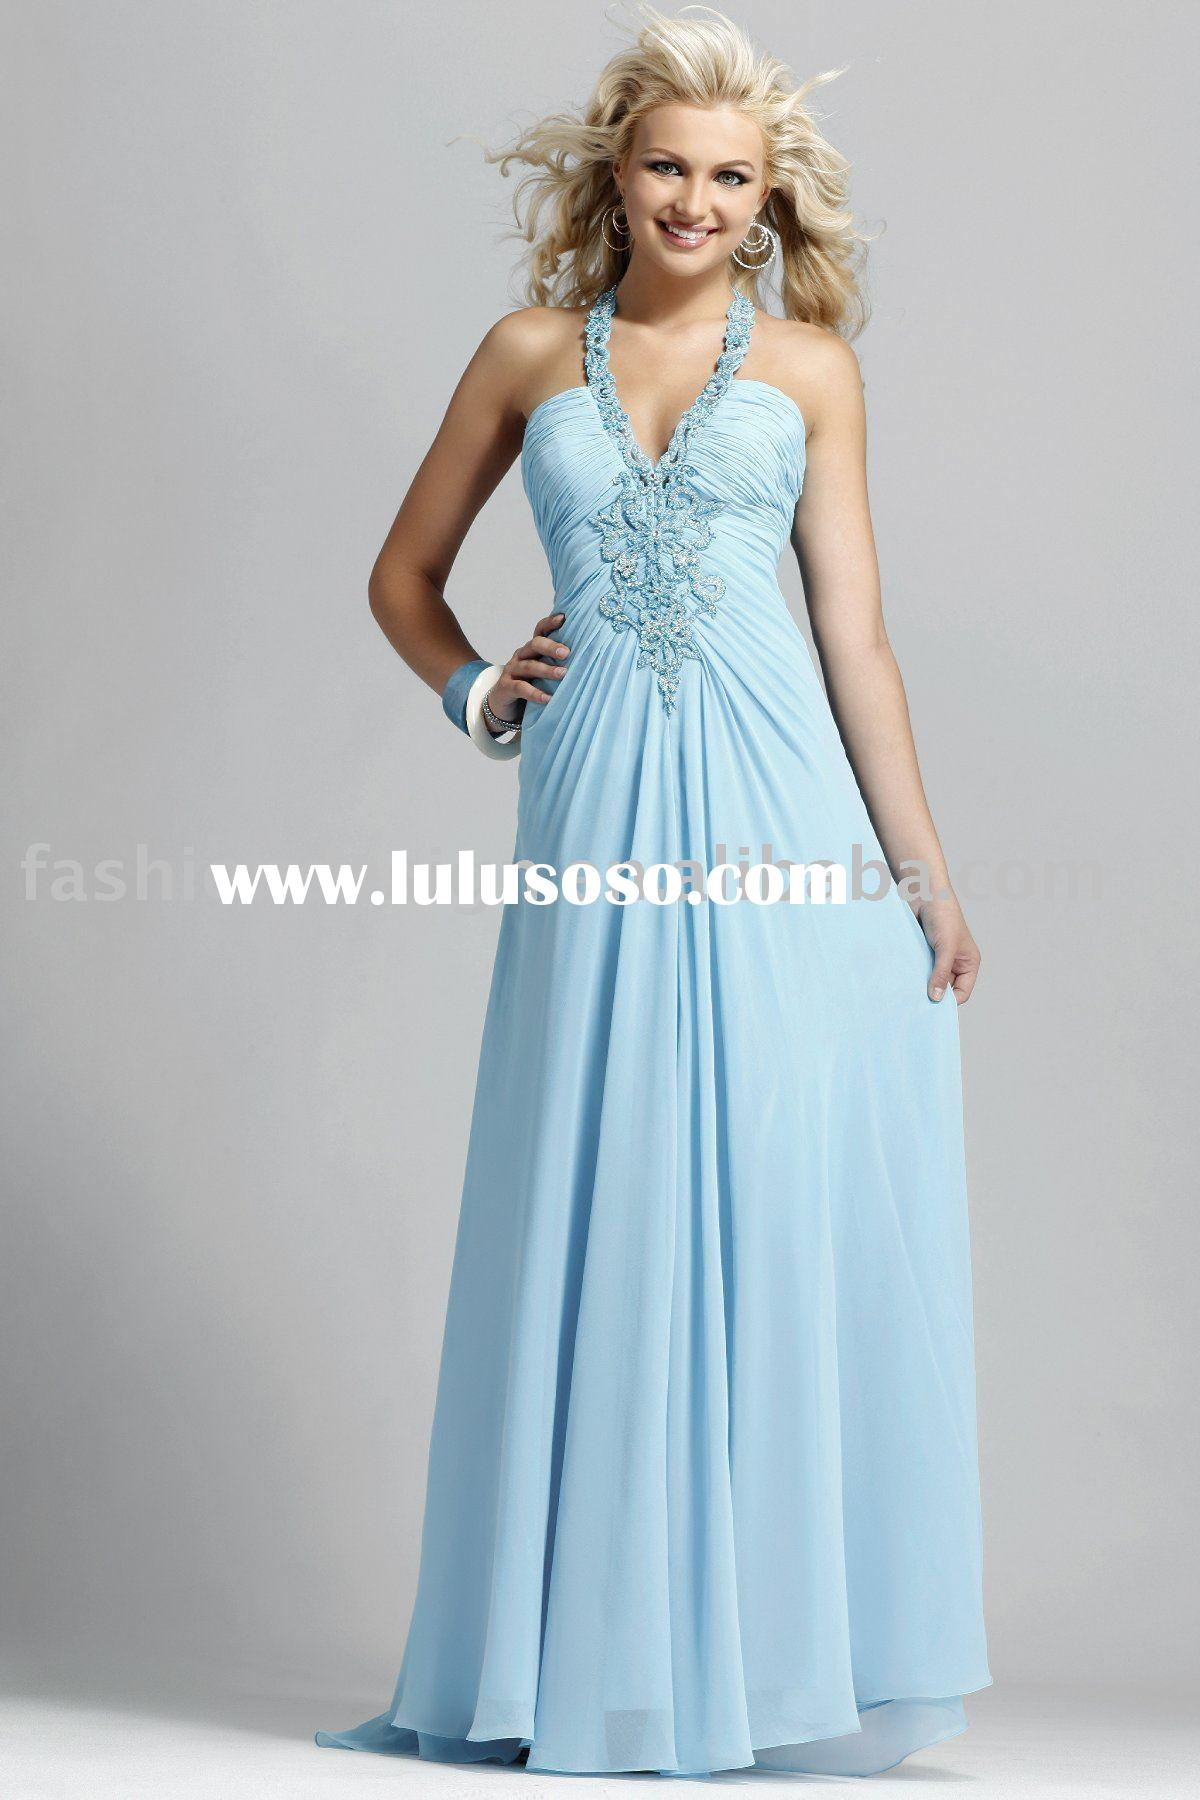 flounceamplace chiffon prom dresses af185 for sale price